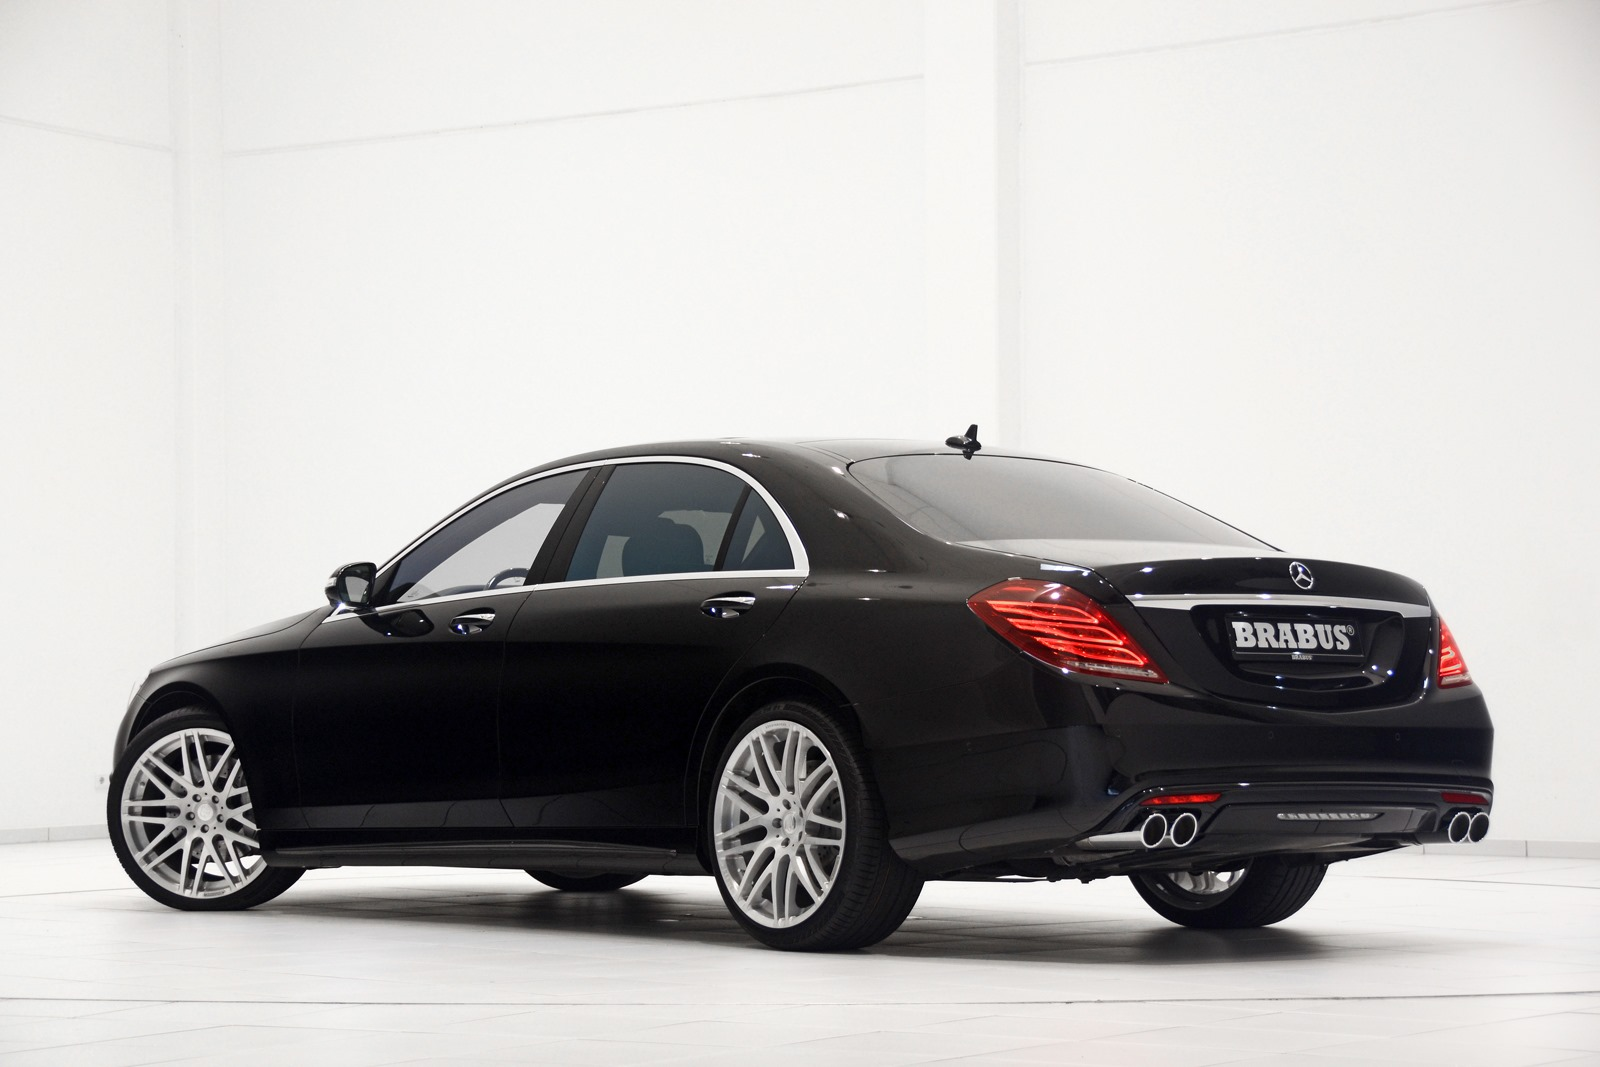 2014 mercedes benz s class gets the brabus treatment for New mercedes benz s class 2014